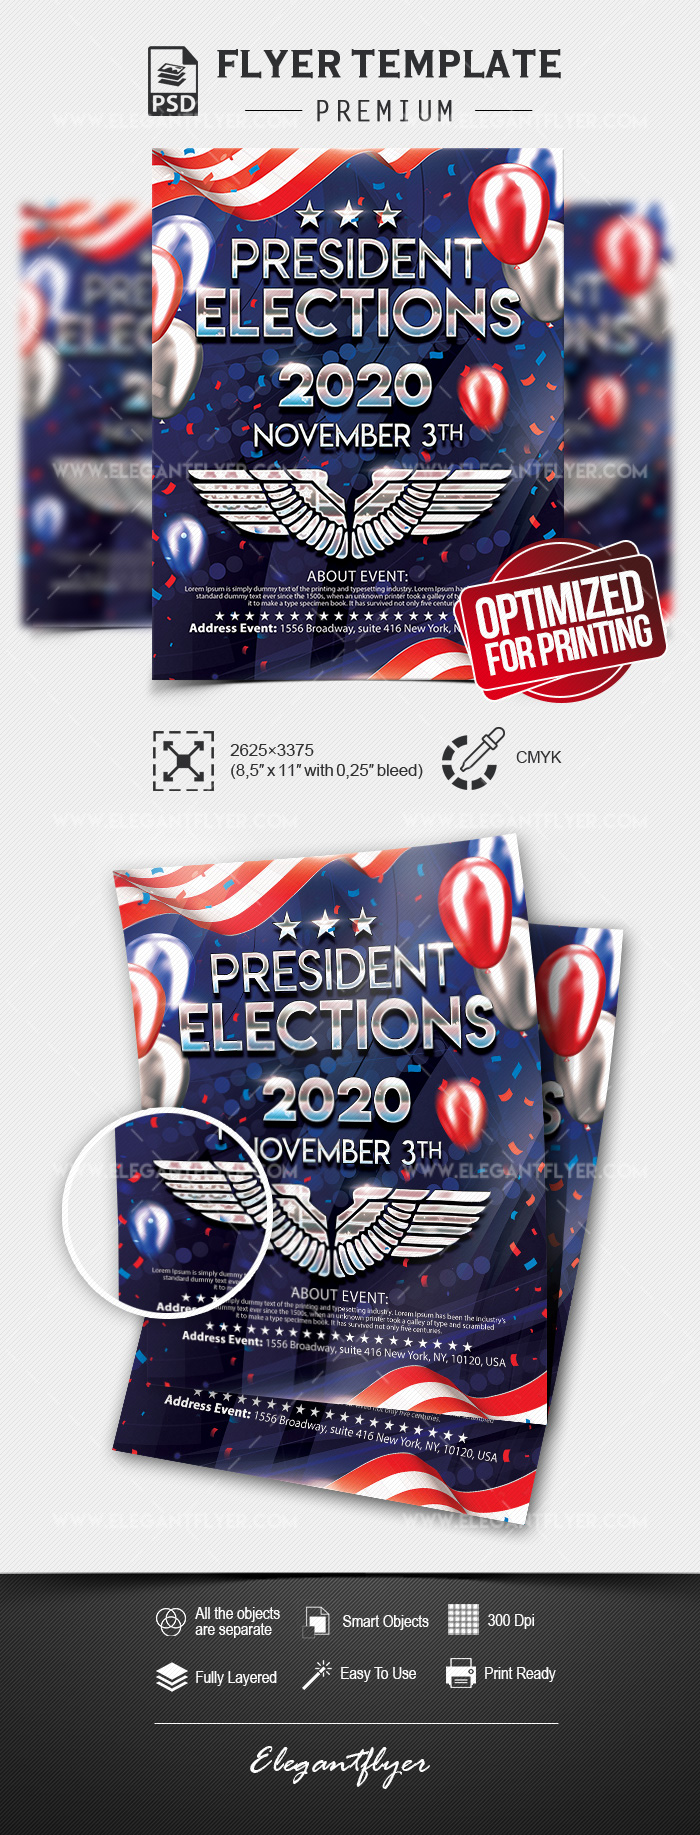 President Elections – PSD Flyer Template